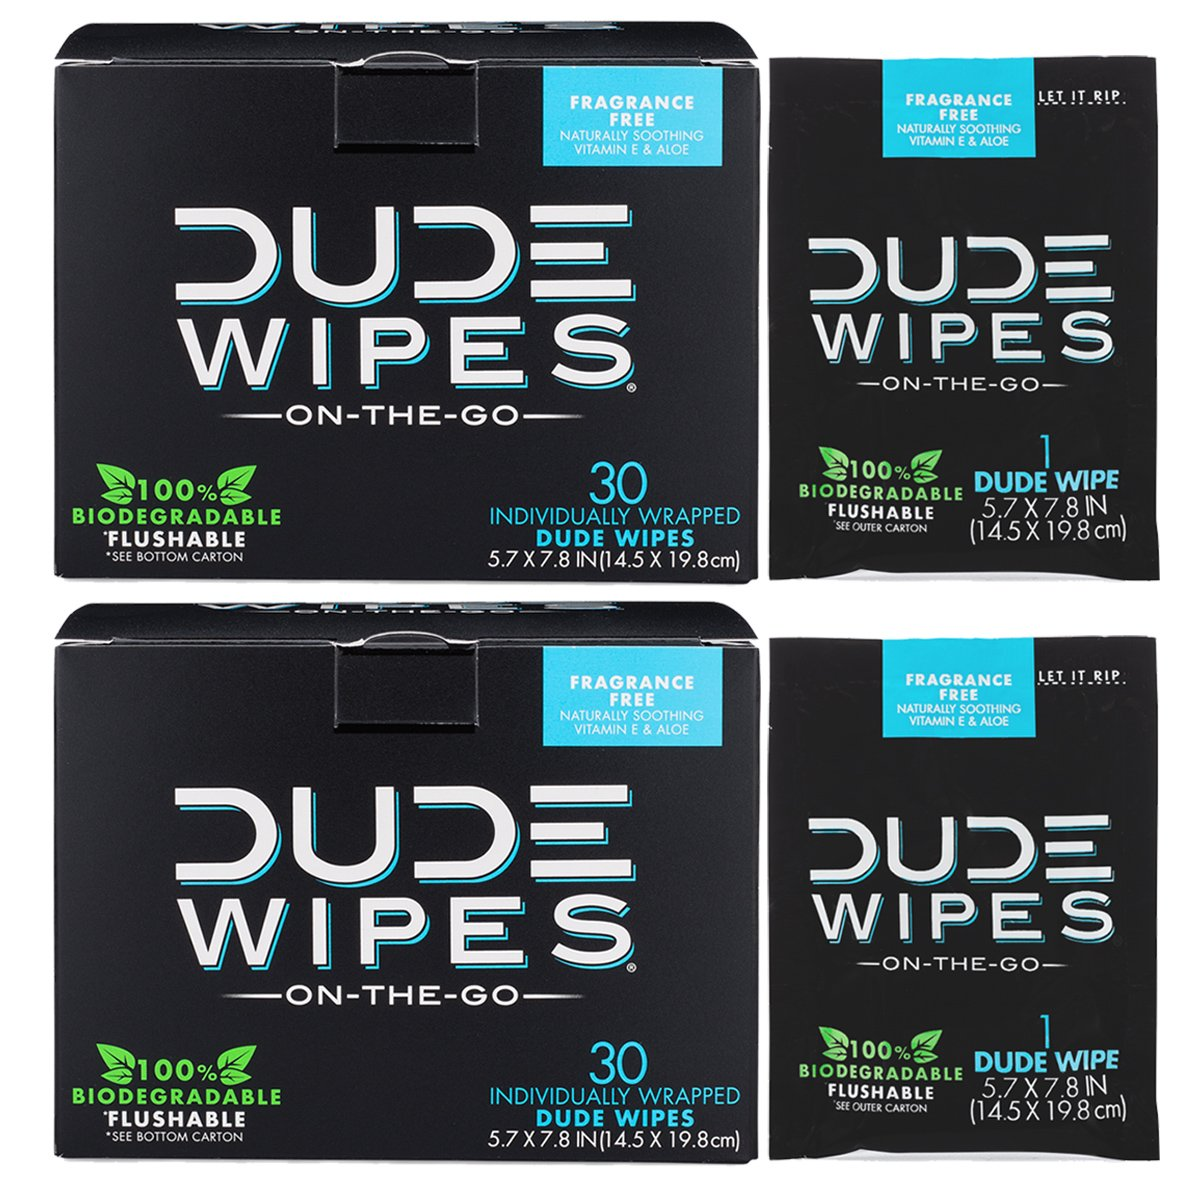 DUDE Wipes Flushable Single Wipes for Travel, Unscented with Vitamin-E & Aloe, 100% Biodegradable (2 Packs, 30 Individually Wrapped Wipes Each)